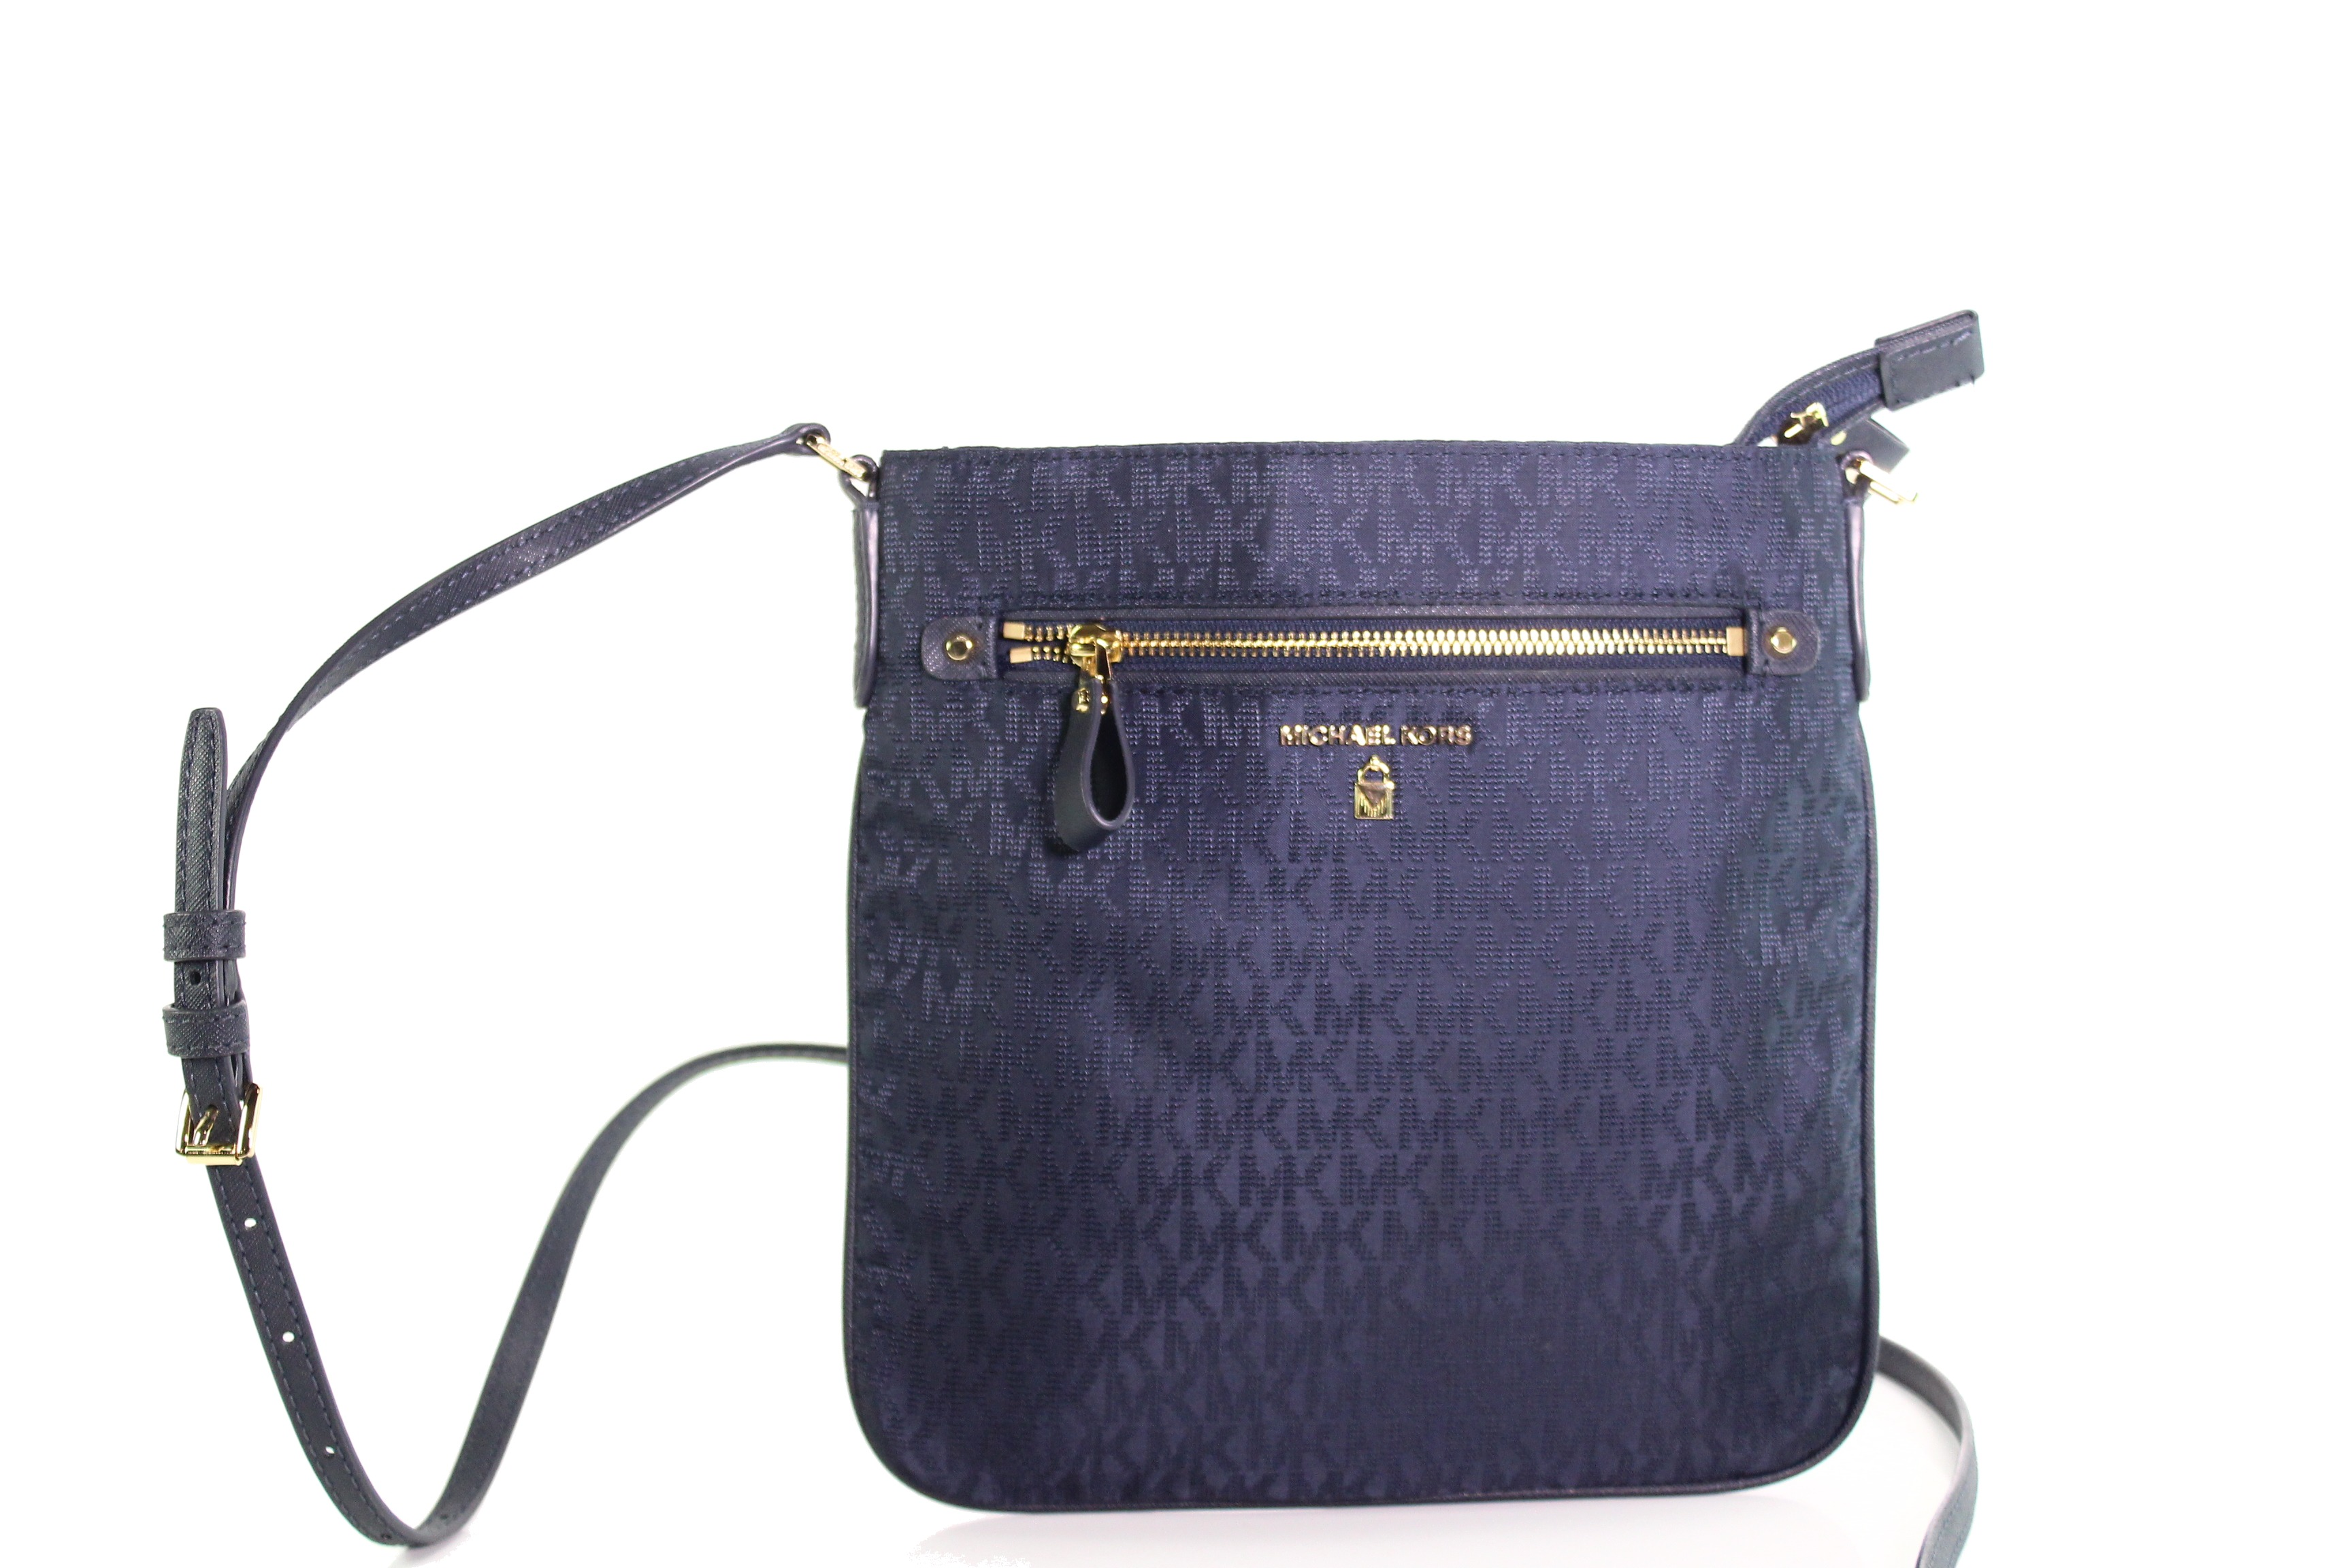 856be06407c9 Details about Michael Kors NEW Admiral Blue Nylon Kelsey Large Crossbody  Bag Purse  108-  035